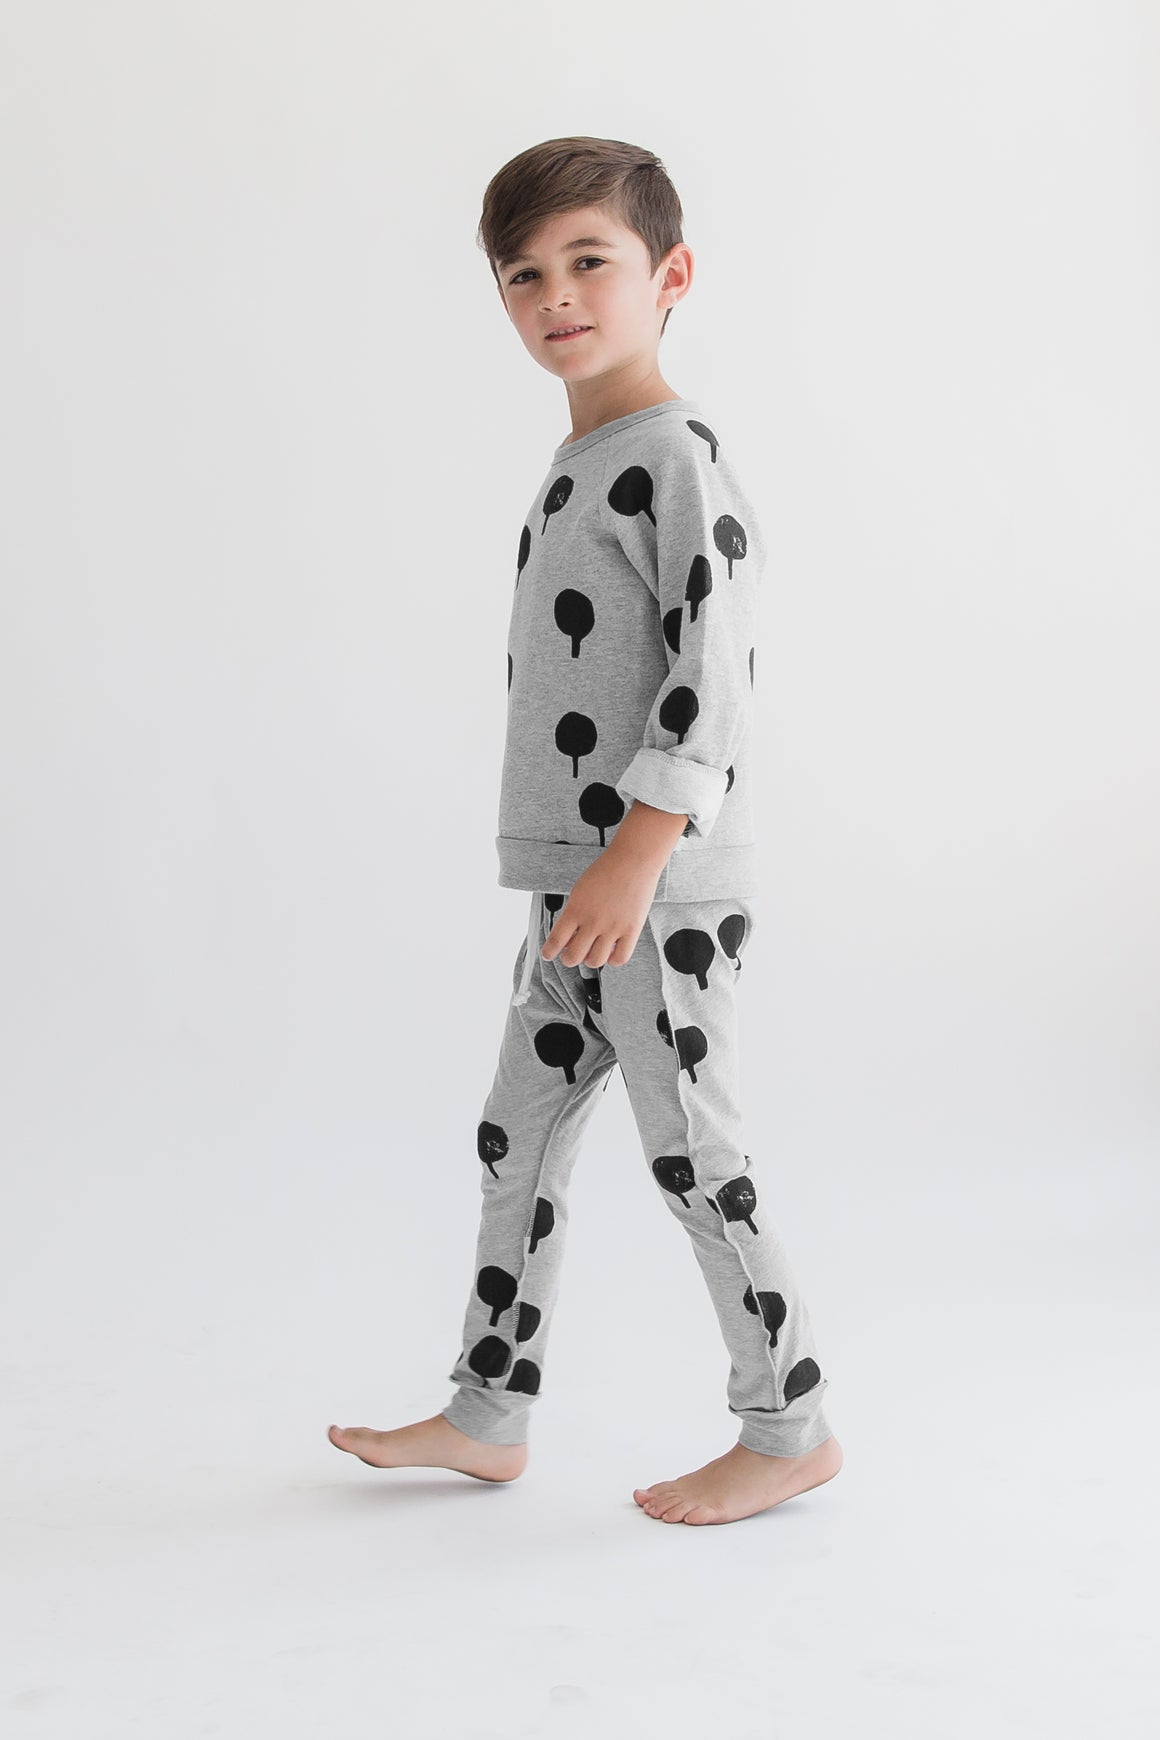 KID + KIND 'Tree Stamp' Skinny Pant - Heather Grey - Last One!! Size: 12-18M